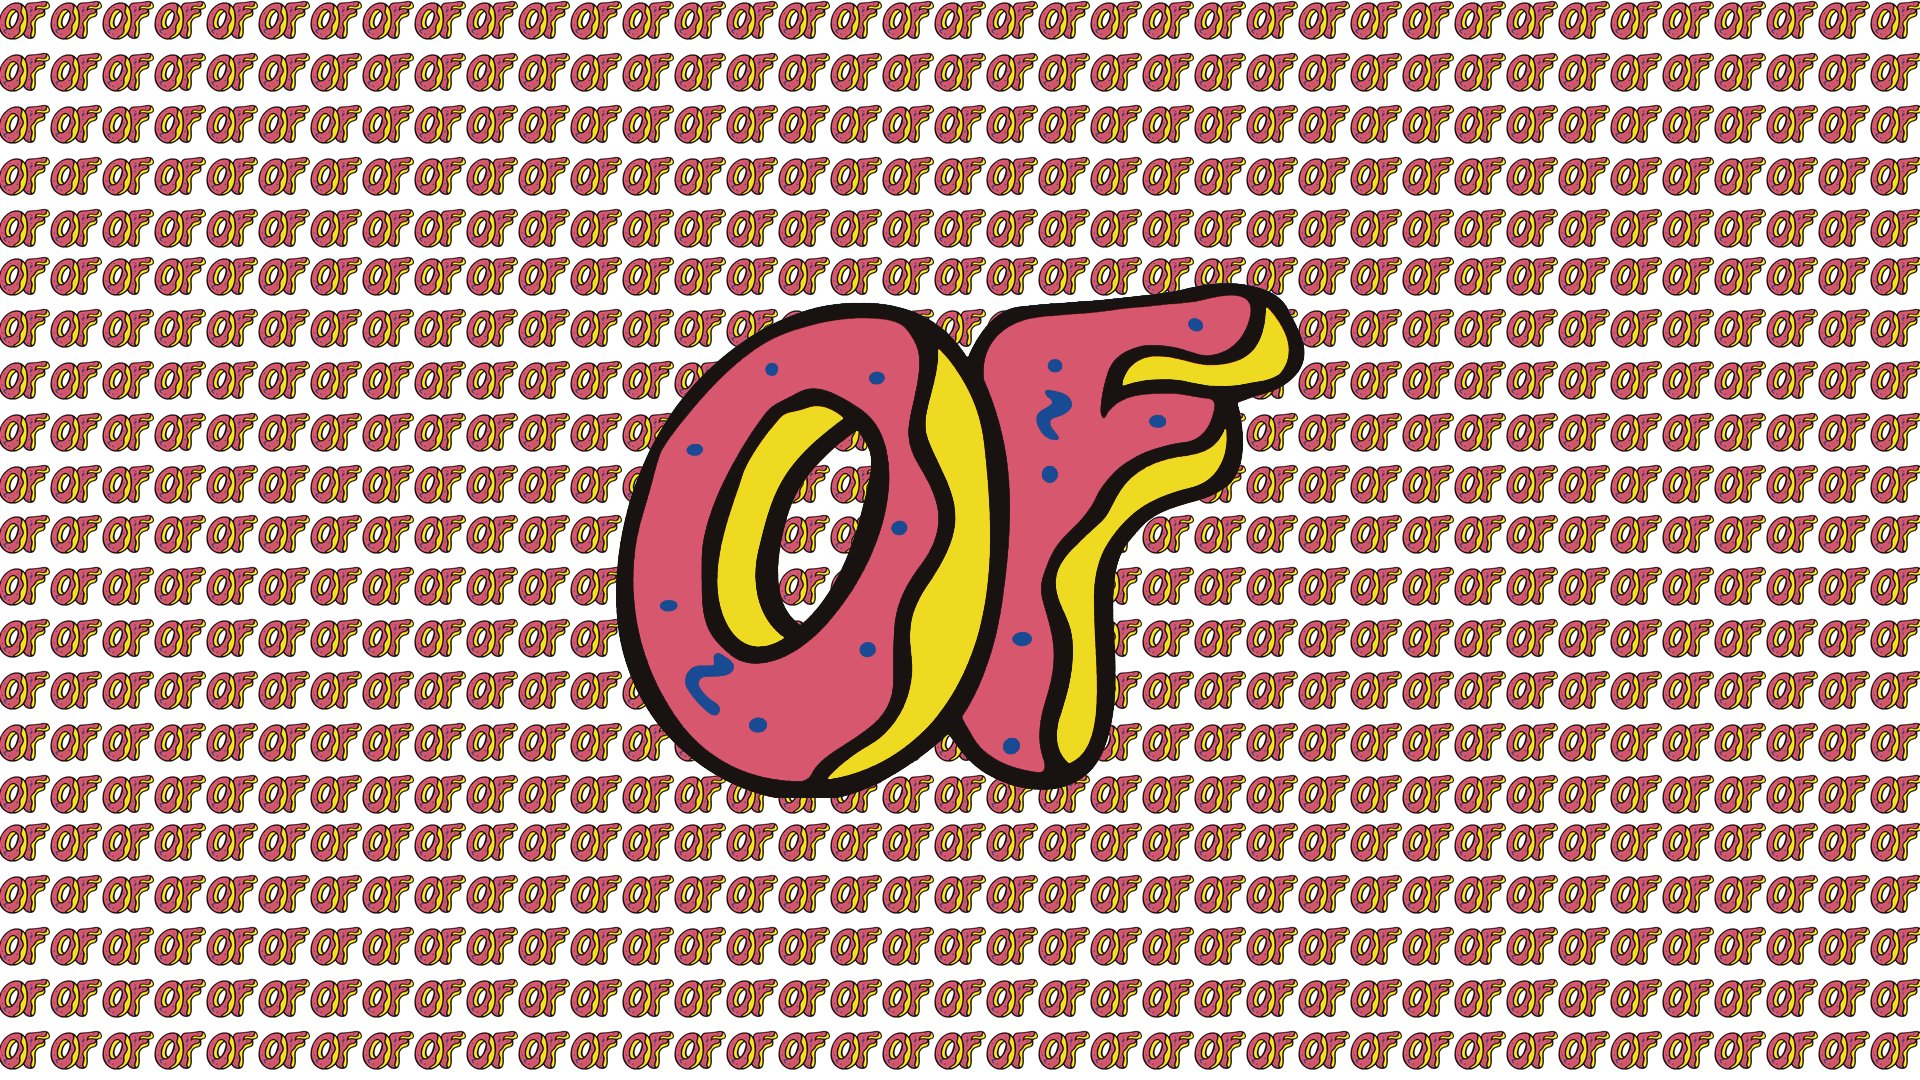 Odd Future Donut Wallpaper - WallpaperSafari